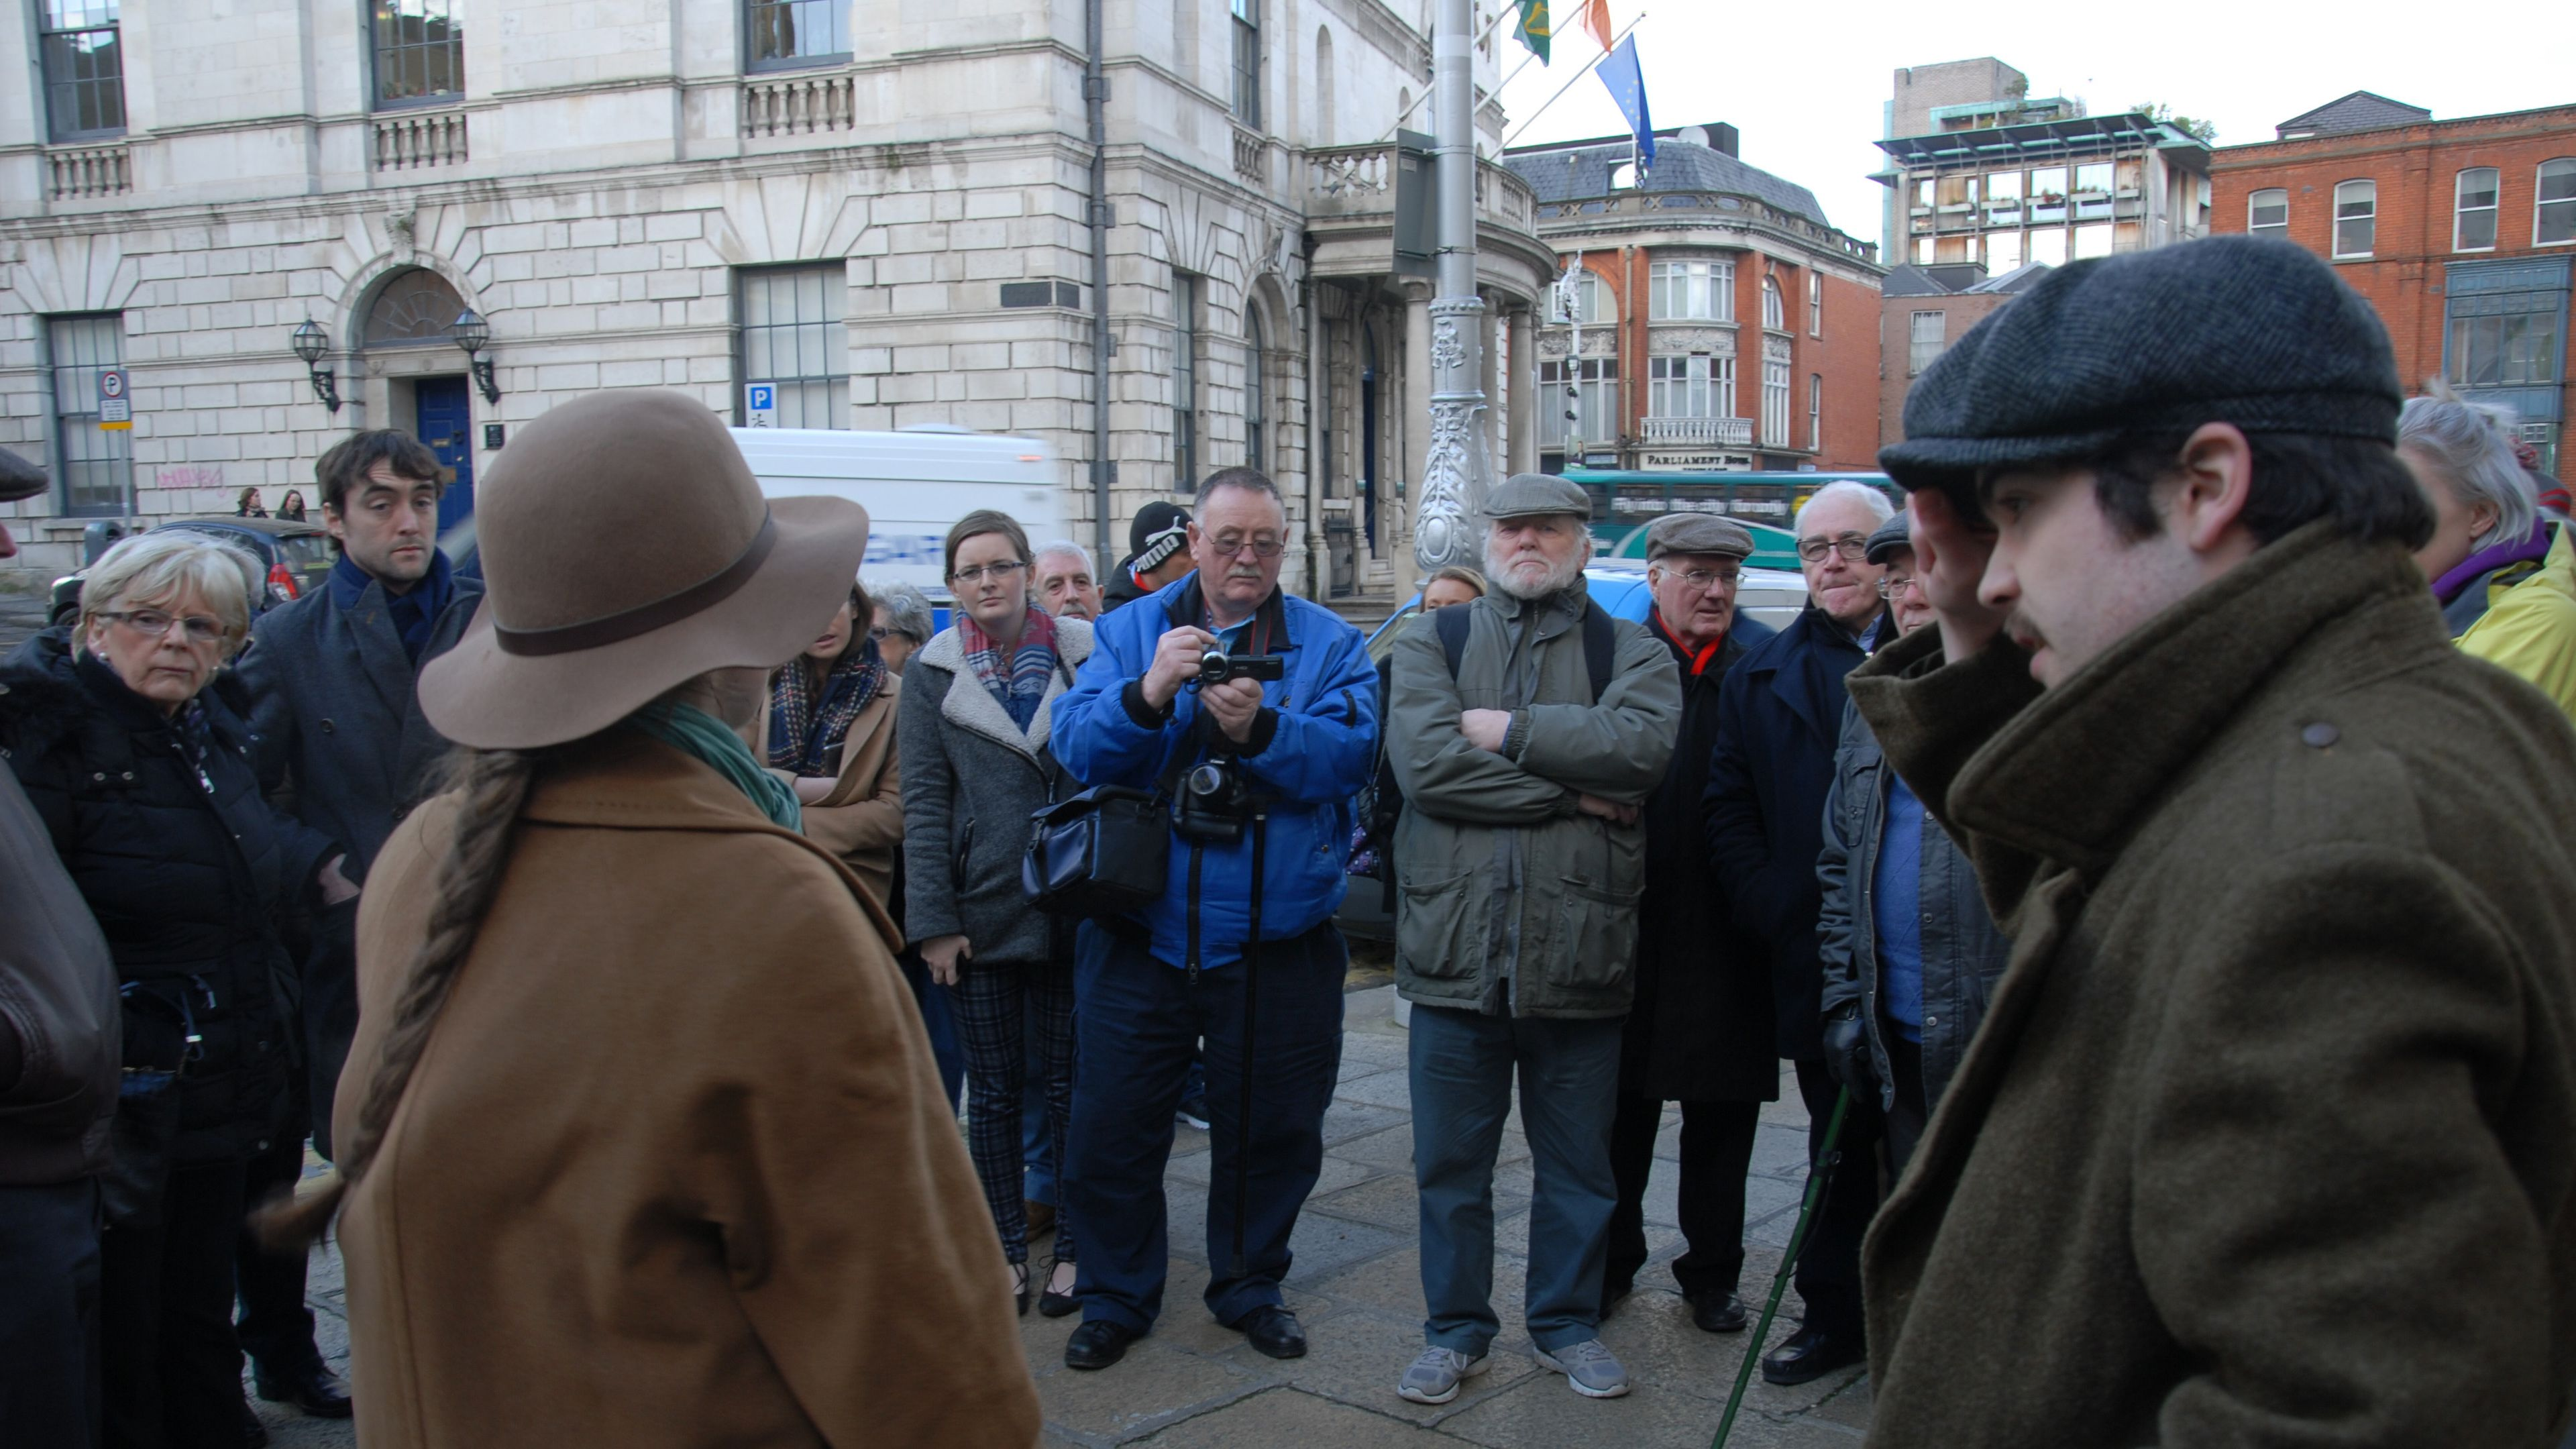 Guided tour group in Dublin